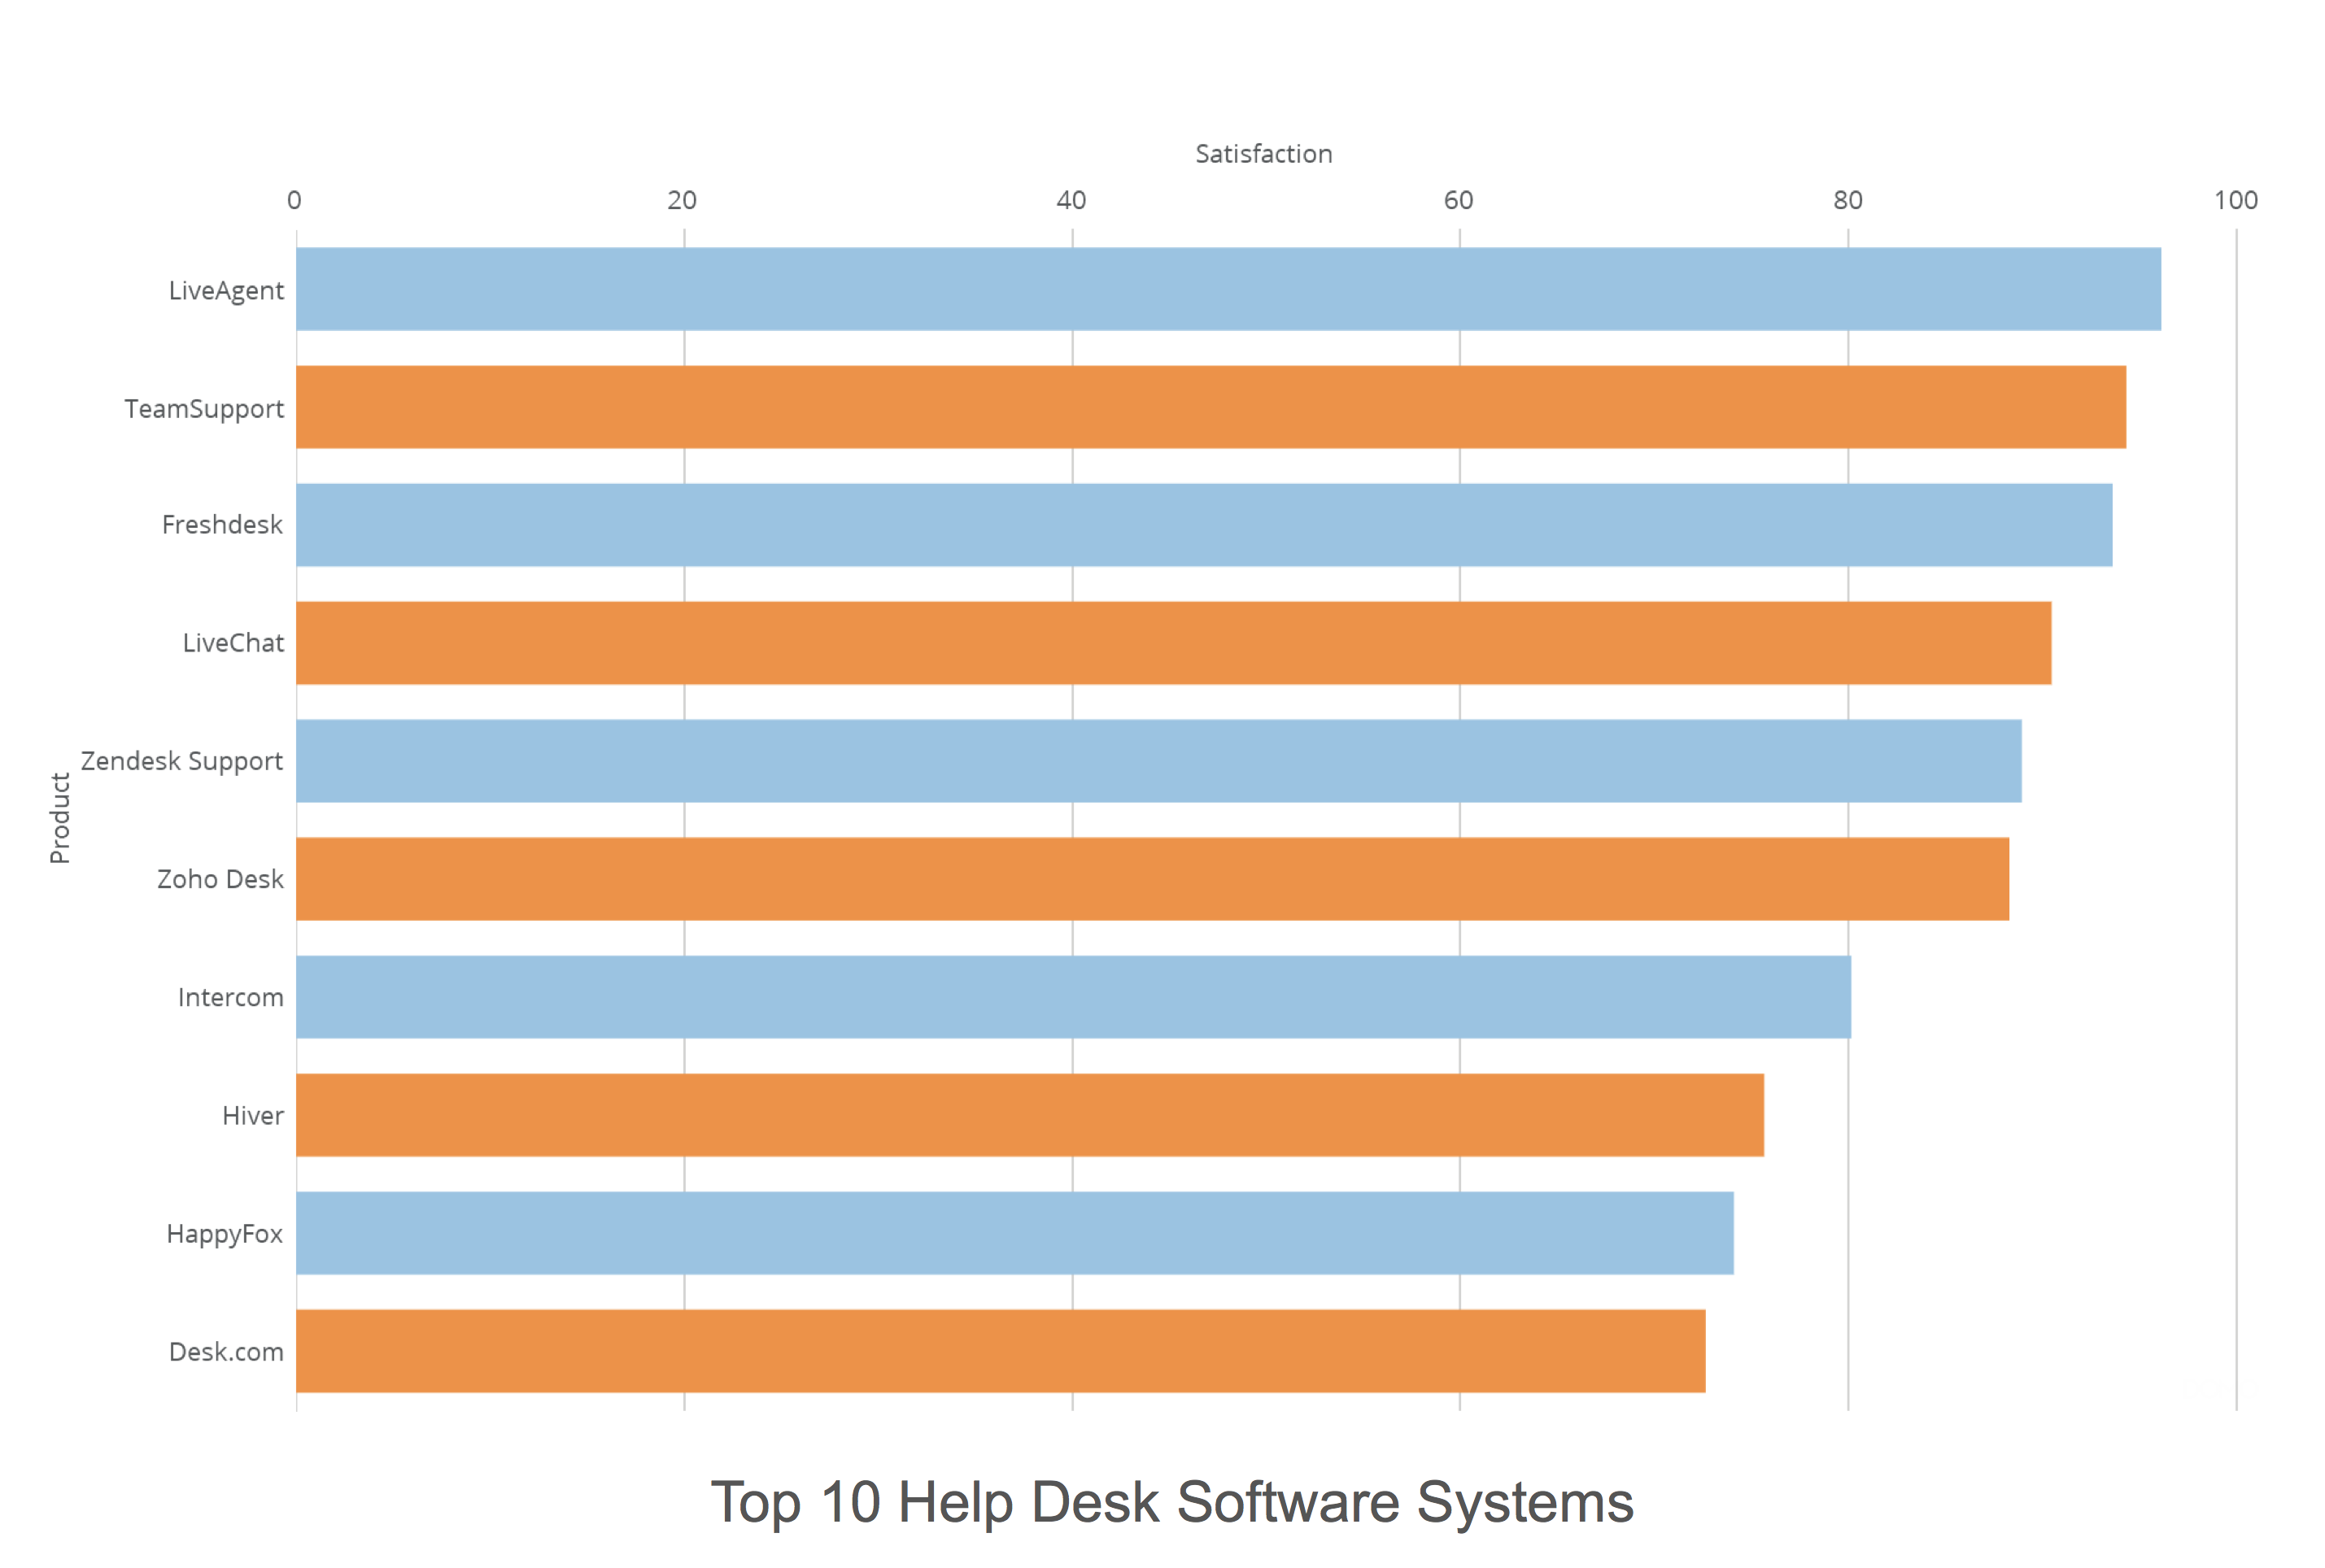 Top 10 Help Desk Technician Software Systems